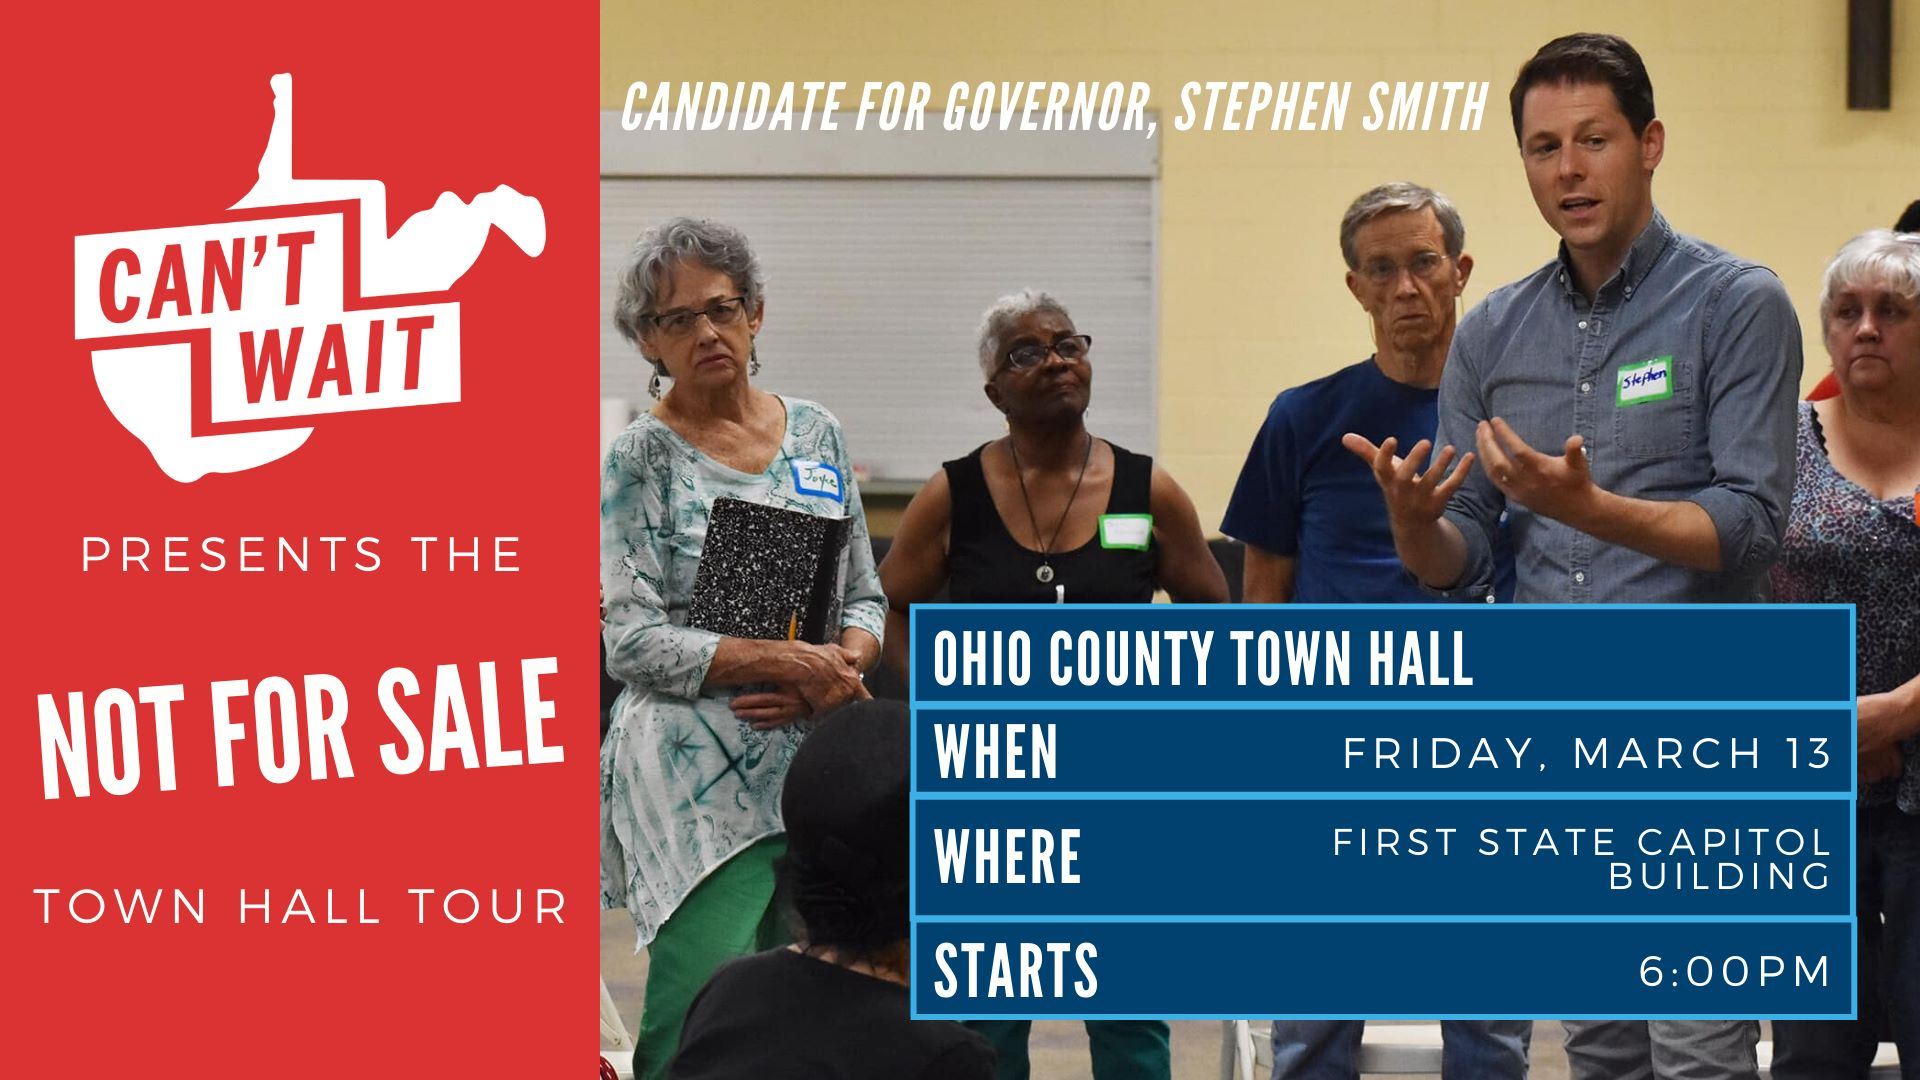 Ohio County Town Hall graphic